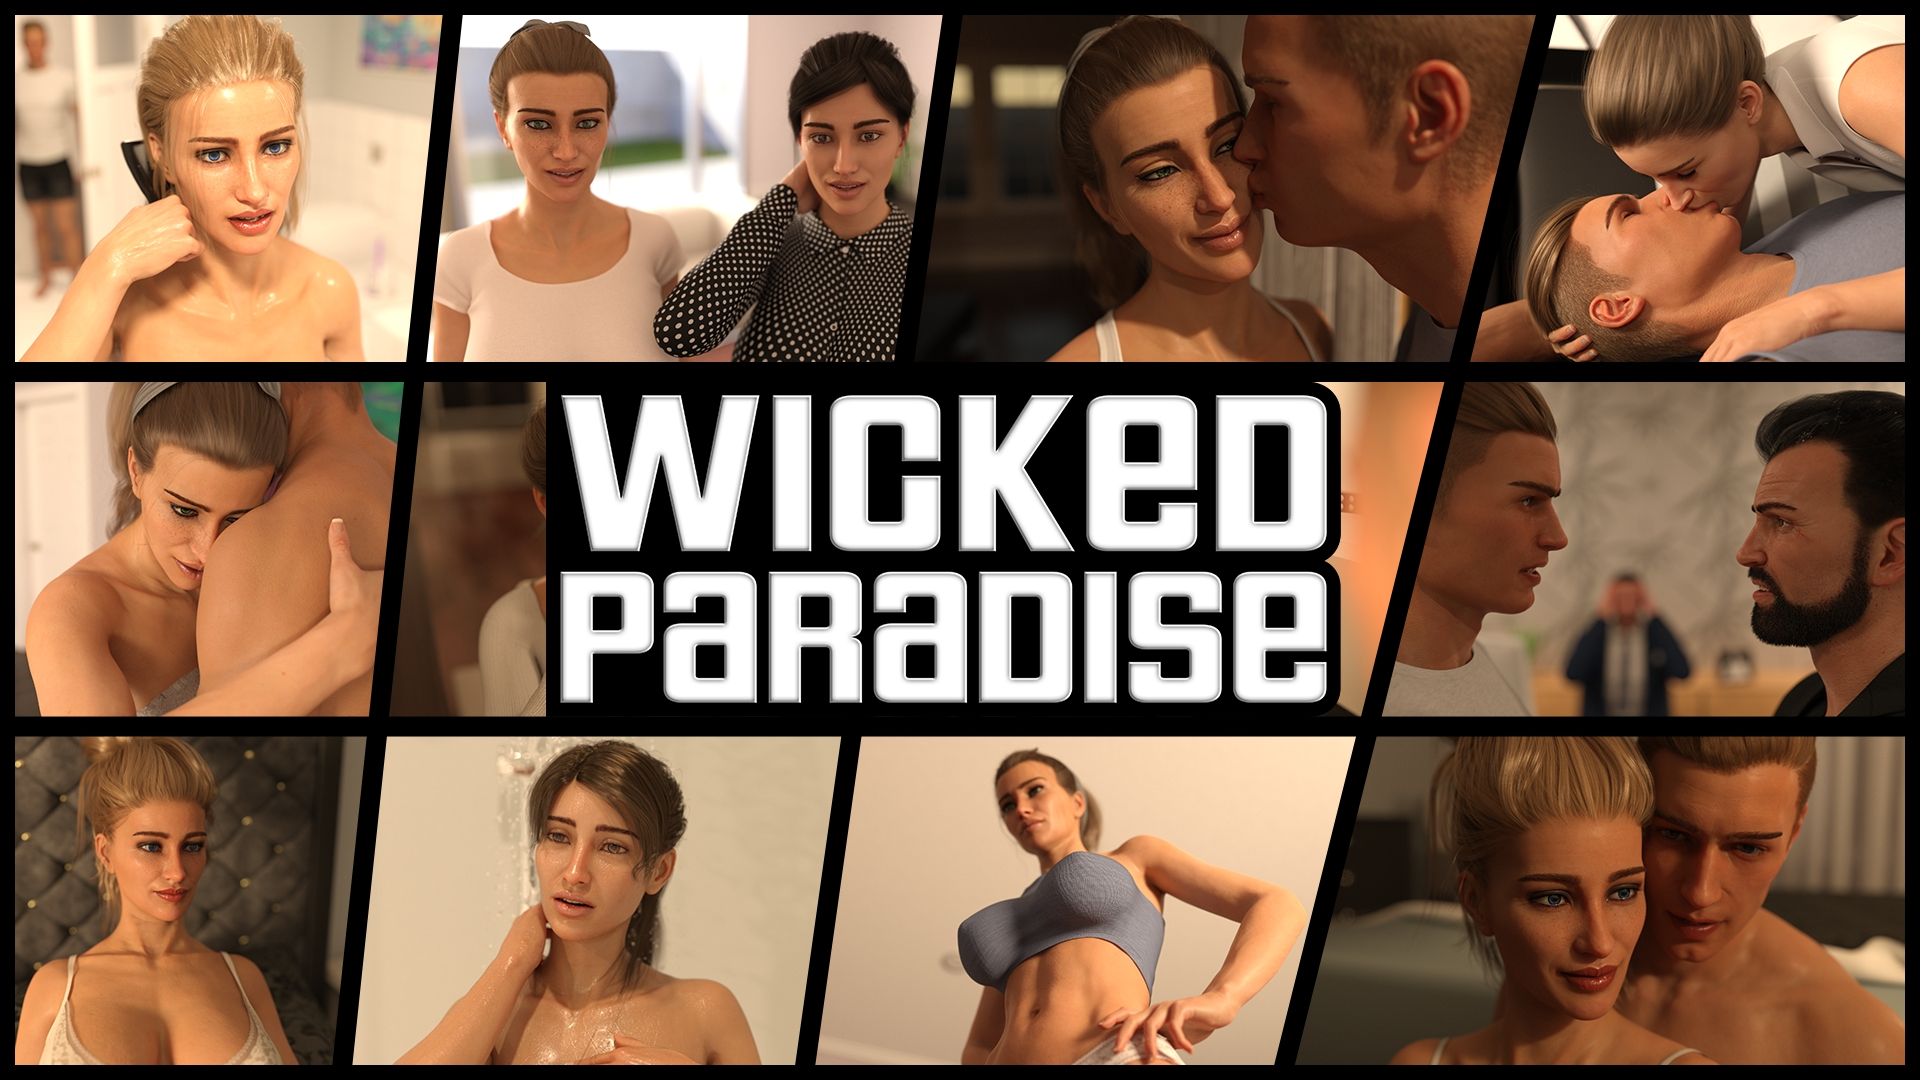 Wicked Paradise [VEGA Studio]